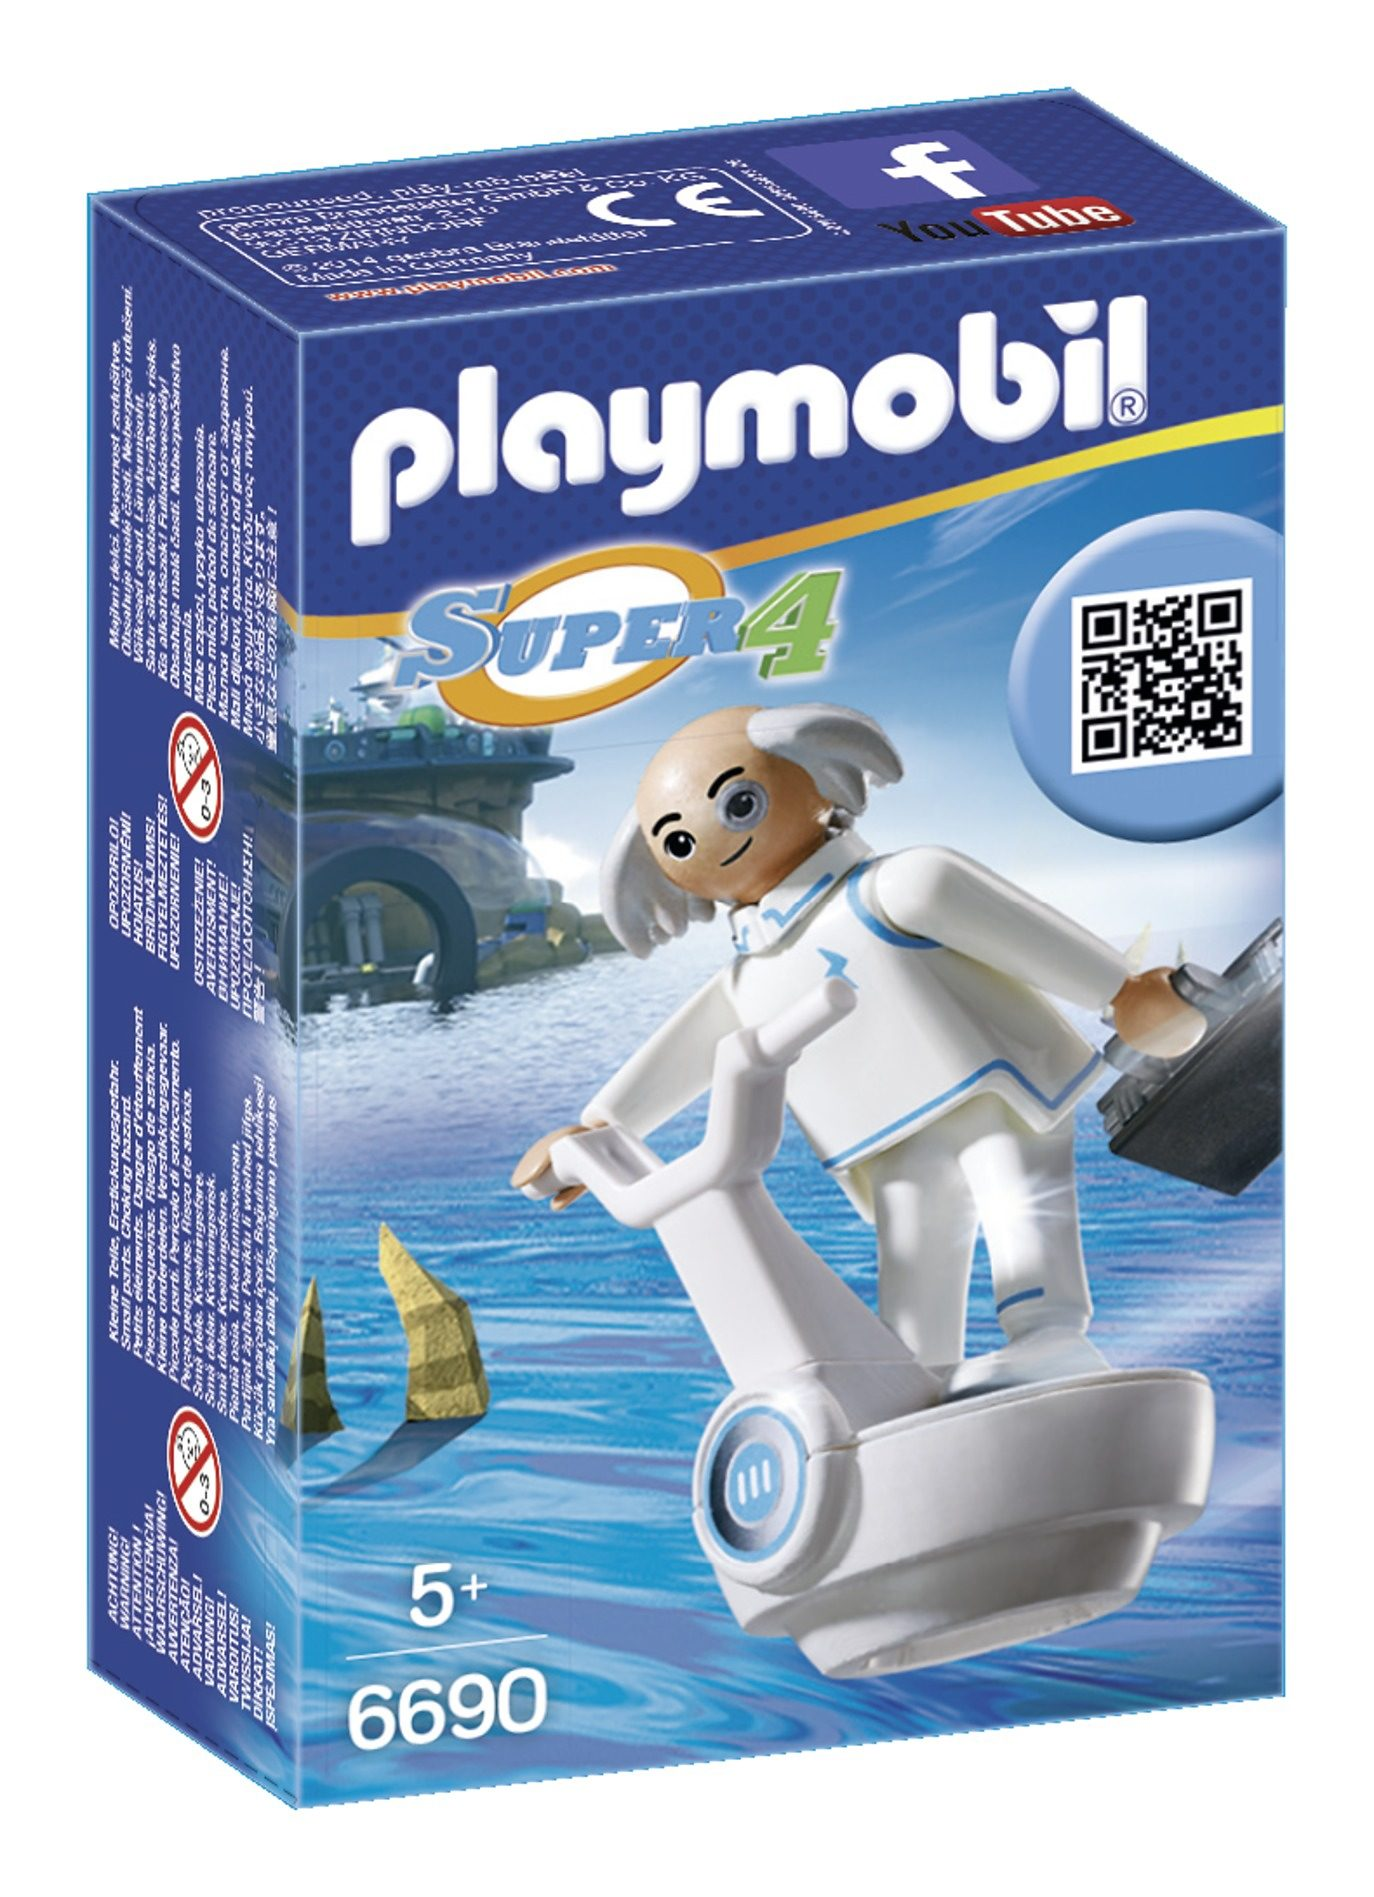 Playmobil® DR X (6690), Super 4®